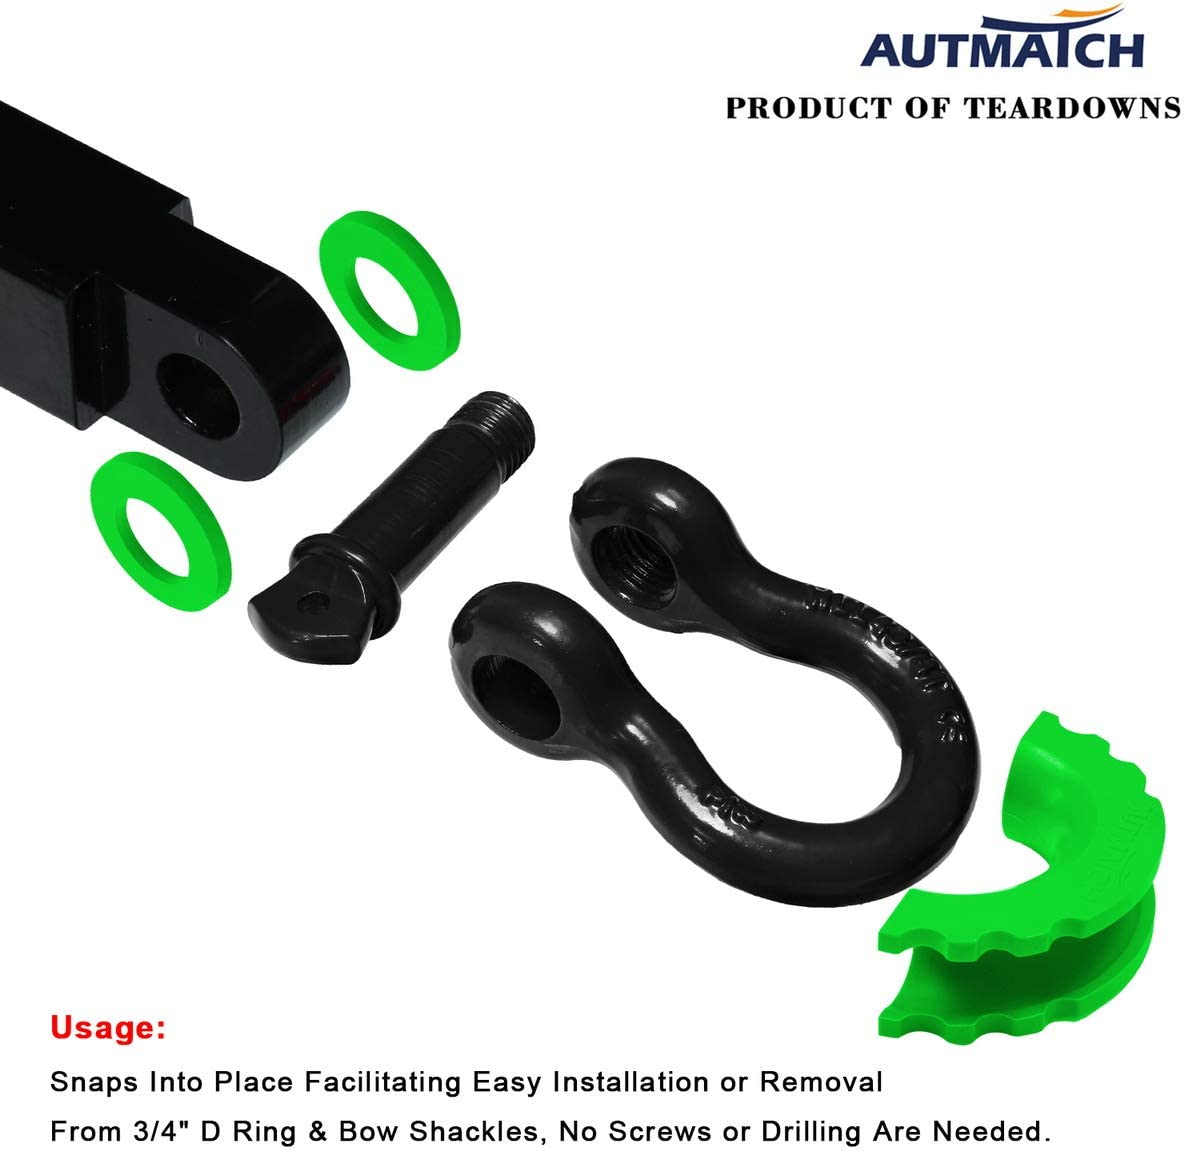 AUTMATCH Pack of 2 D-Ring Shackle Isolators Washers Kit 2 Rubber Shackle Isolators and 8 Washers Fits 3//4 Inch Shackle Gear Design Rattling Protection Shackle Cover Red